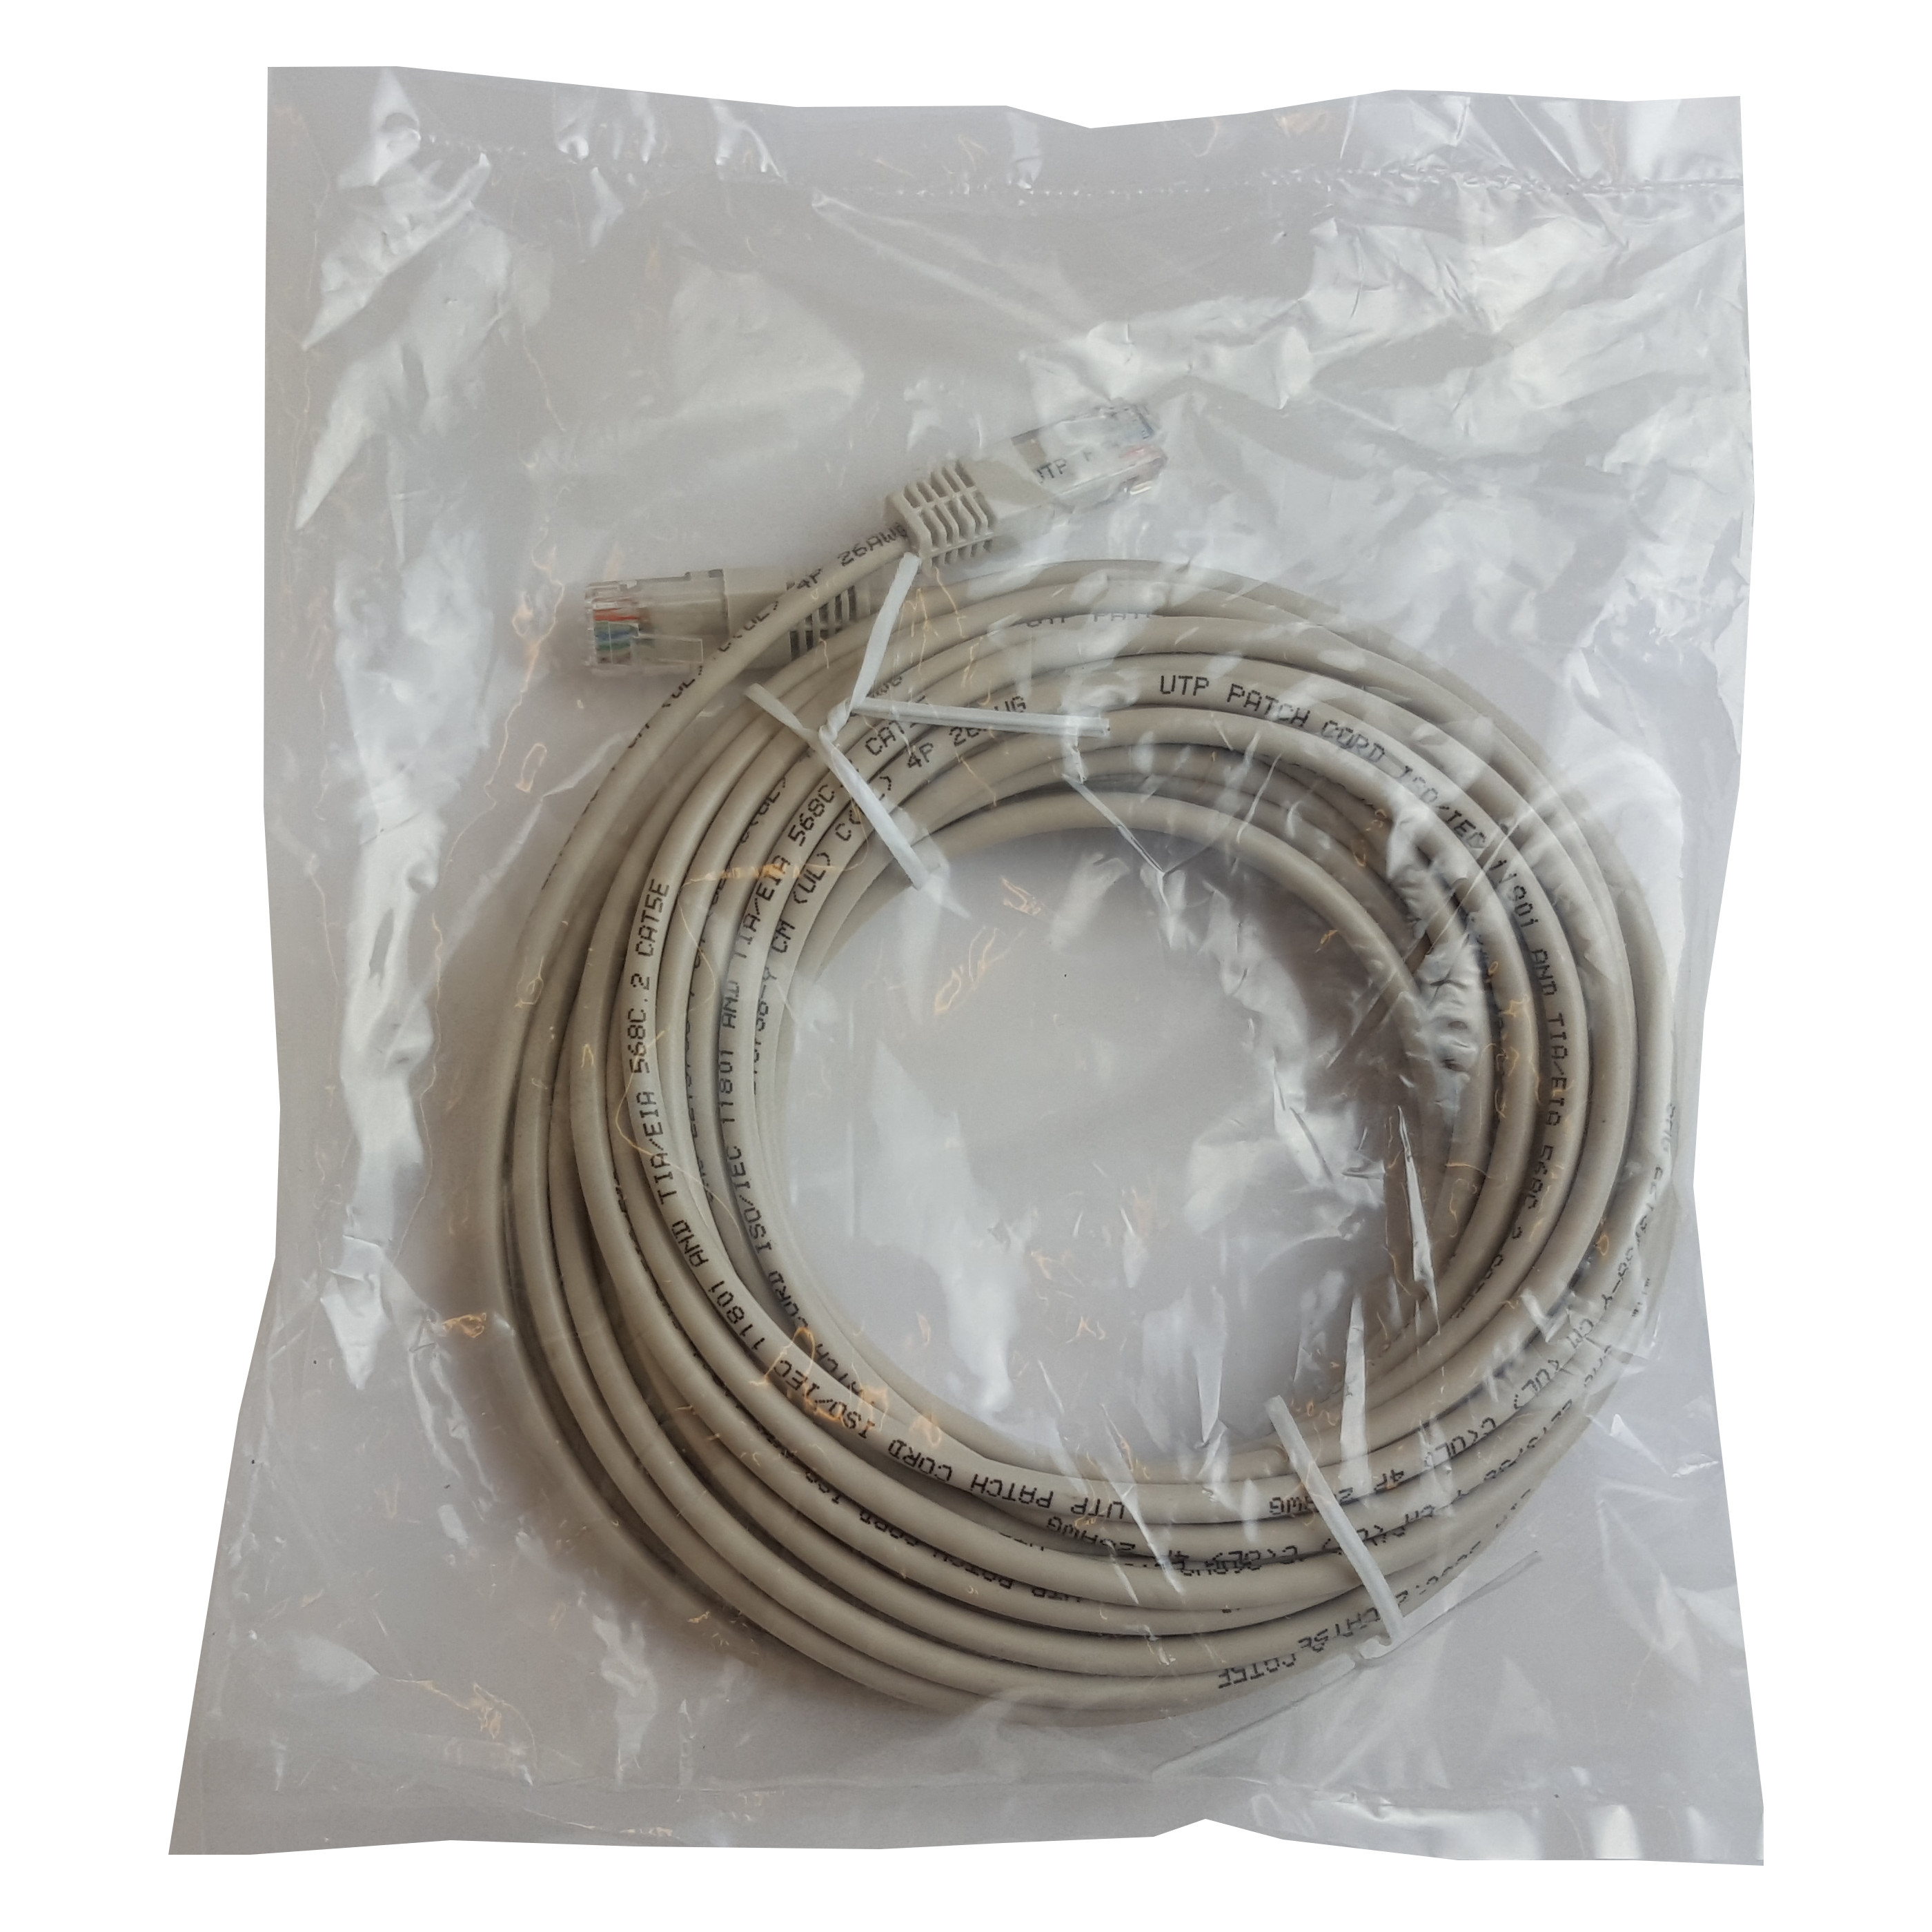 Patch cord UTP CAT5E 10m AWG 26, Cu | NINGBO SHUNSHENG | PATCH10M-UTP